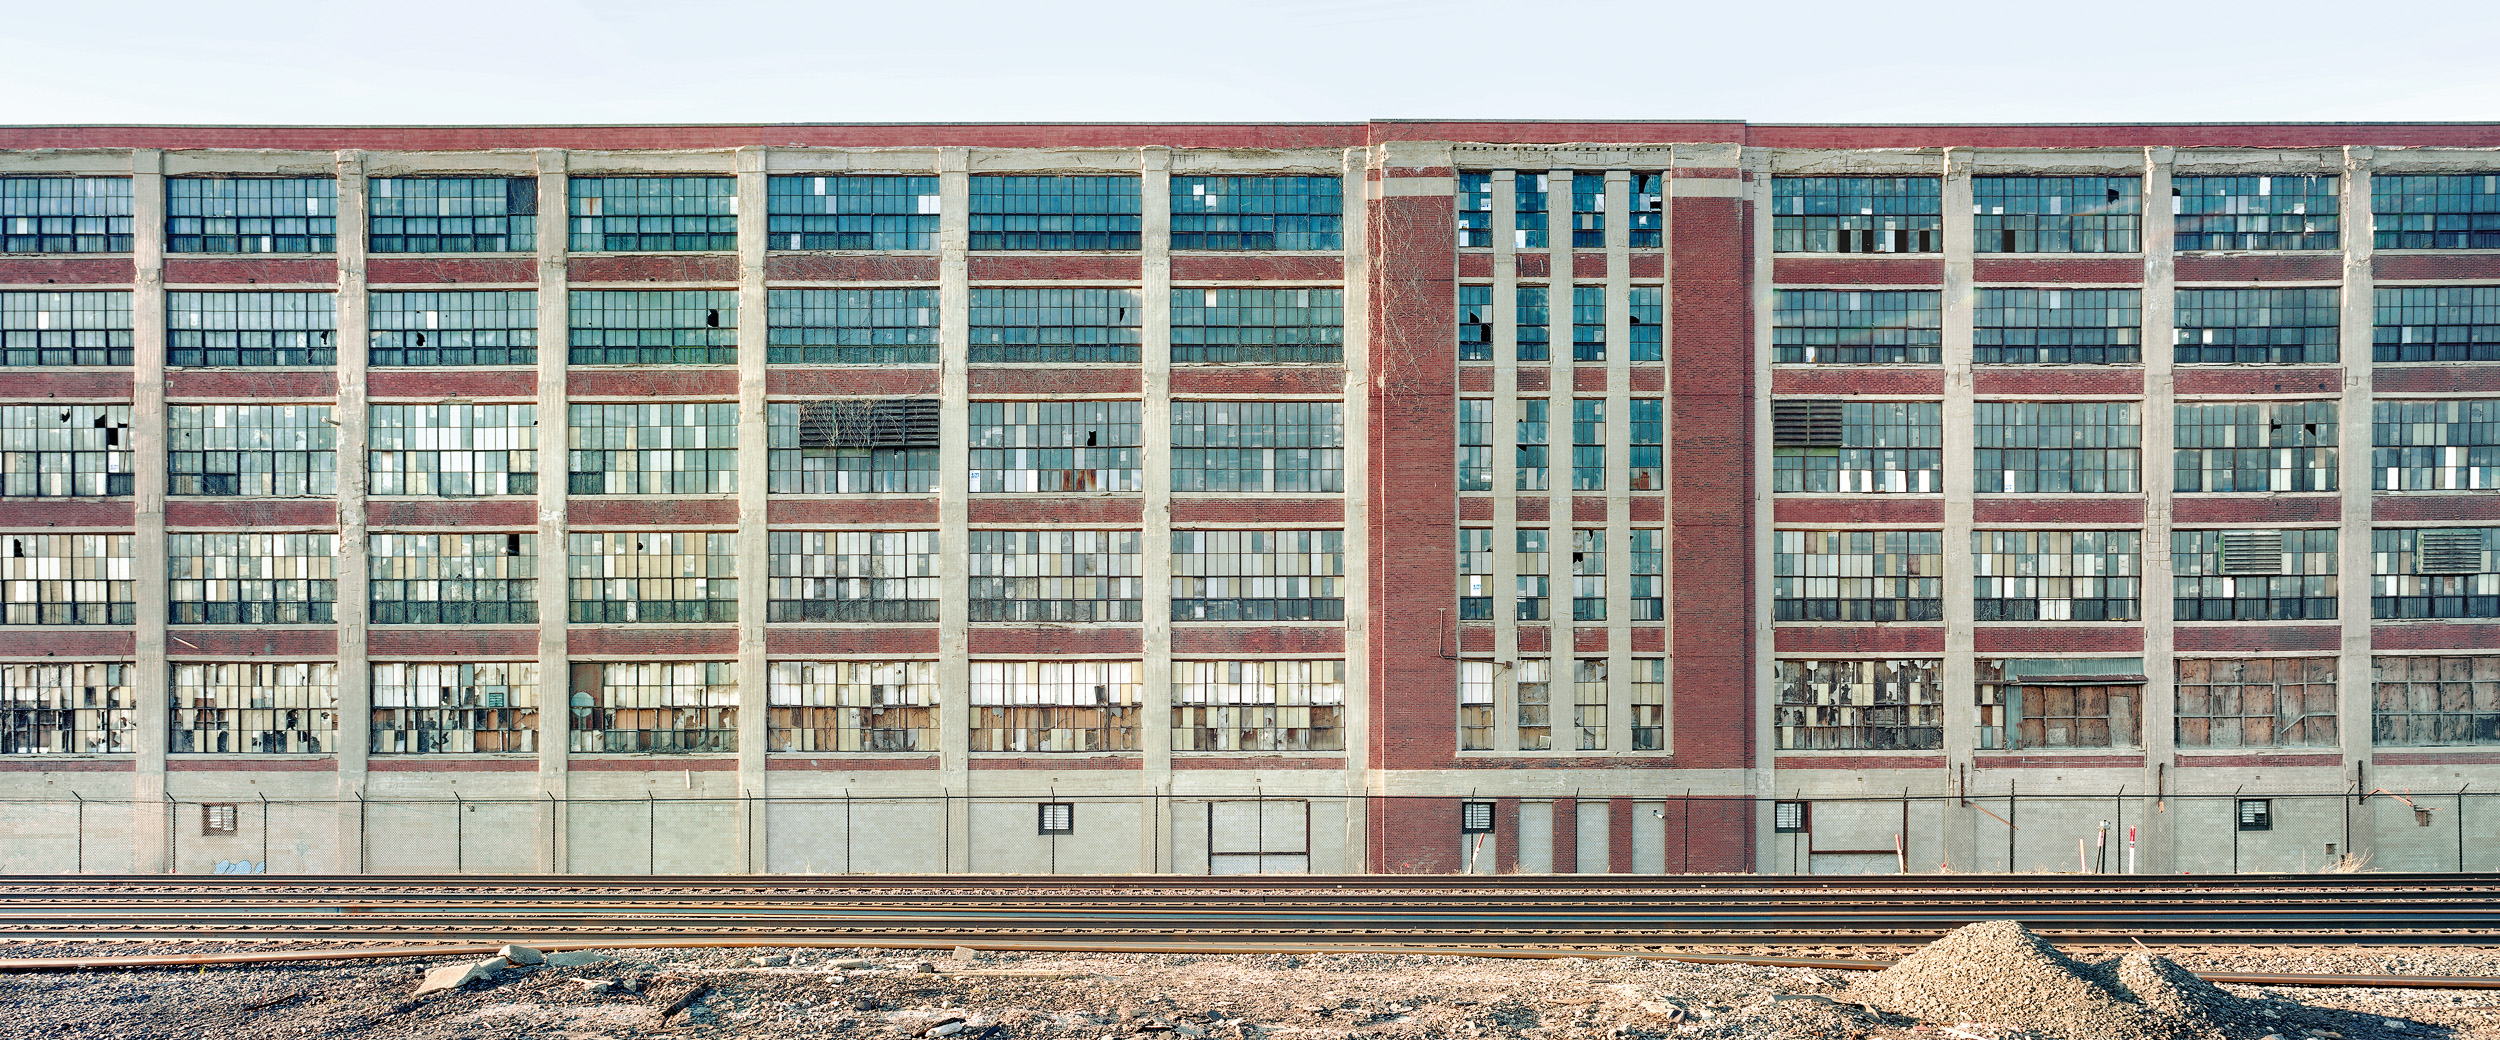 Studebaker Plant, South Bend, Indiana